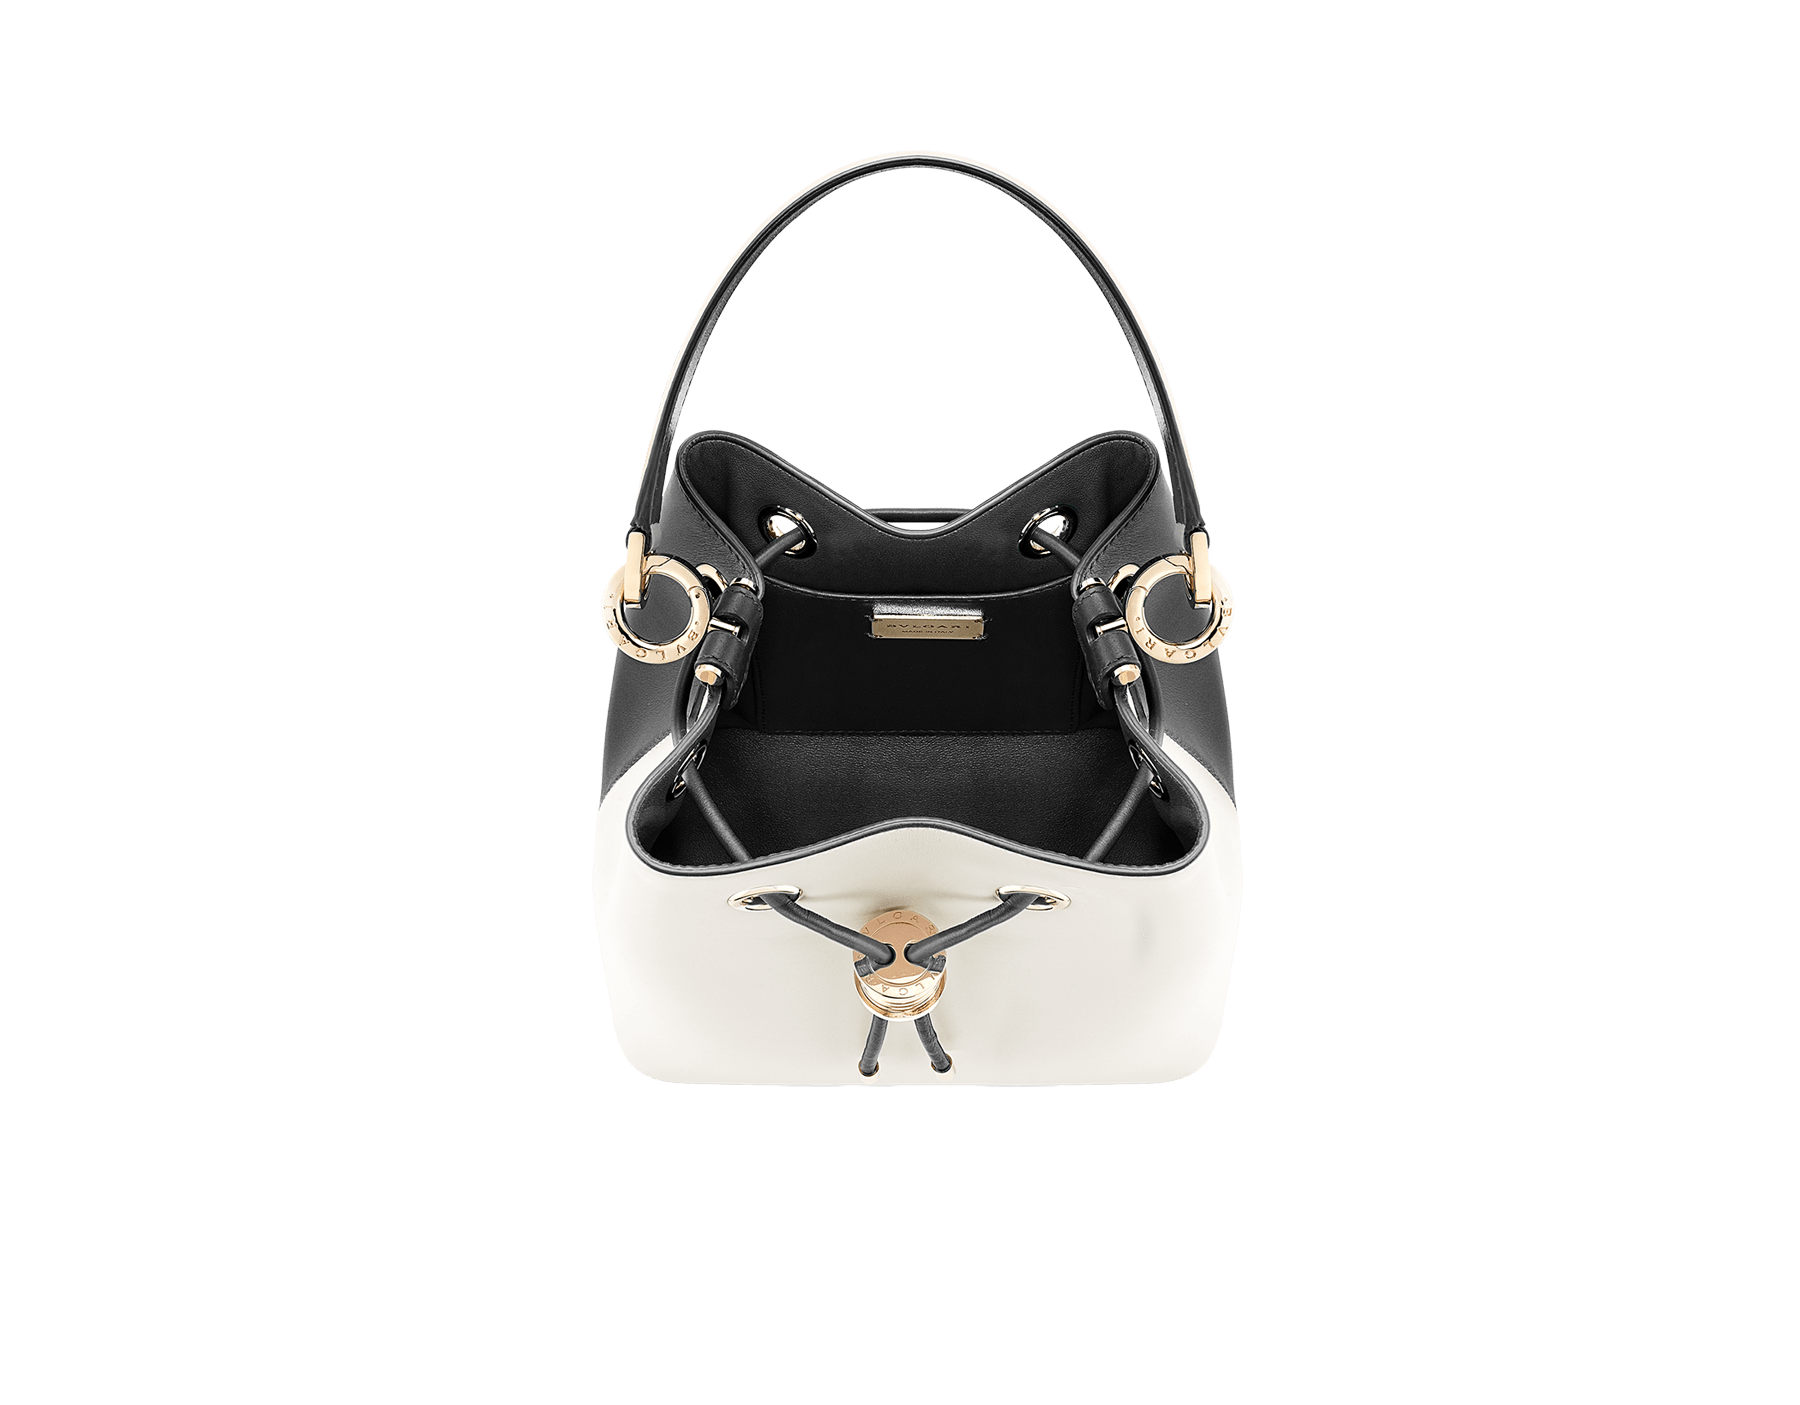 Bucket B.zero1 in black and white agate smooth calf leather and black nappa internal lining. Hardware in light gold plated brass, featuring a B.zero1 décor. 288210 image 2